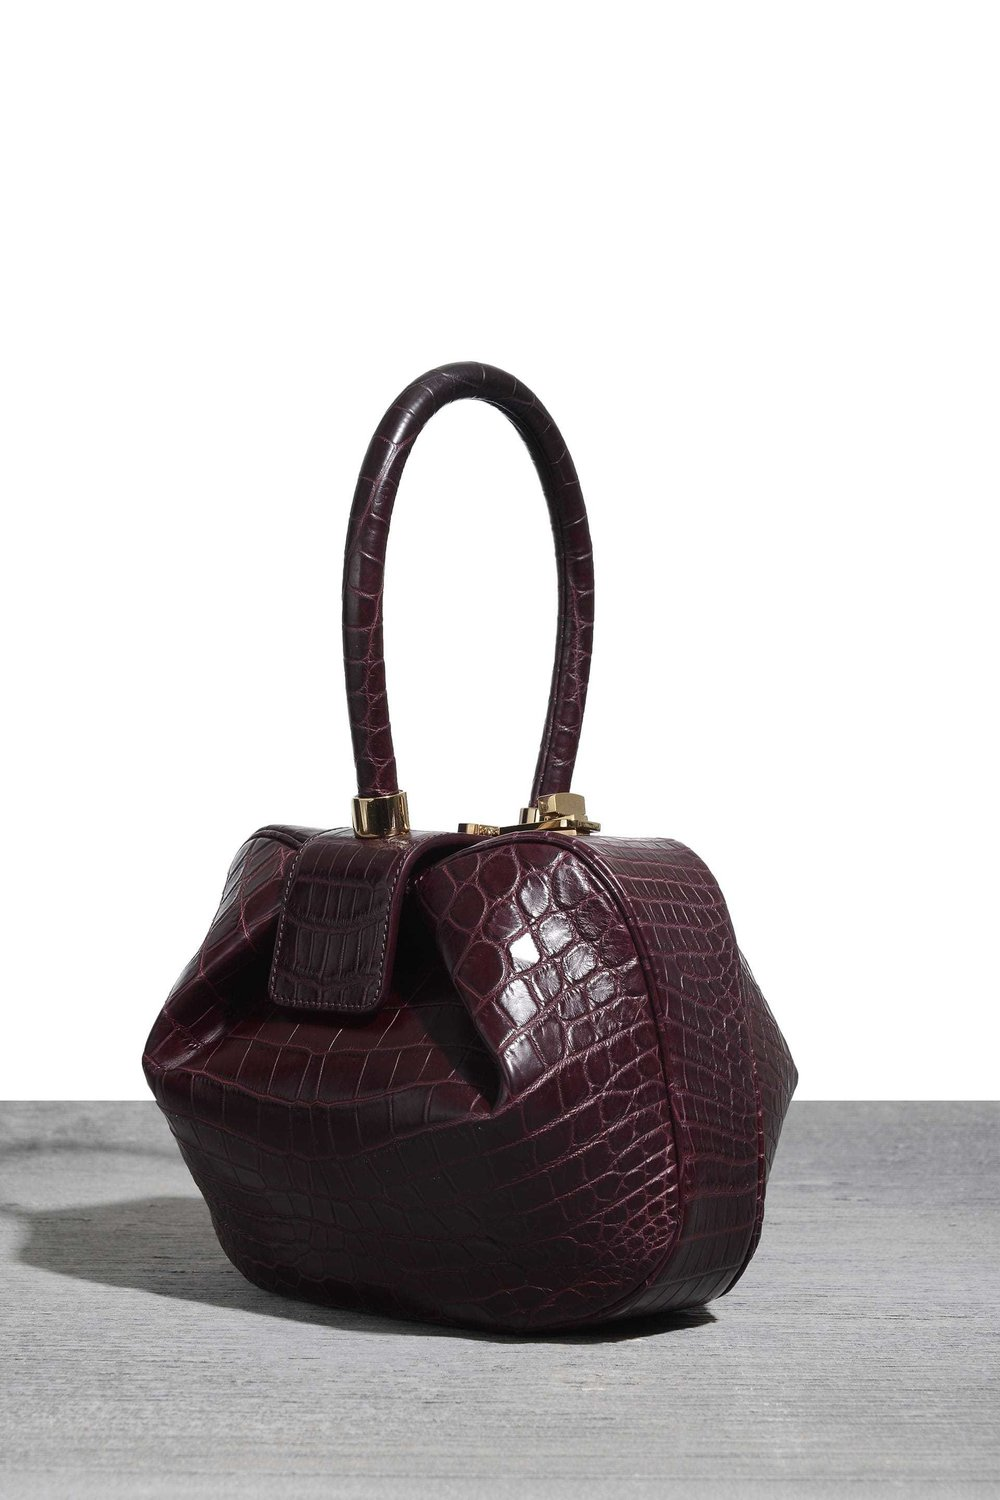 Nina bag in burgundy croc, $16,000, at Bergdorf Goodman and Net-a-Porter